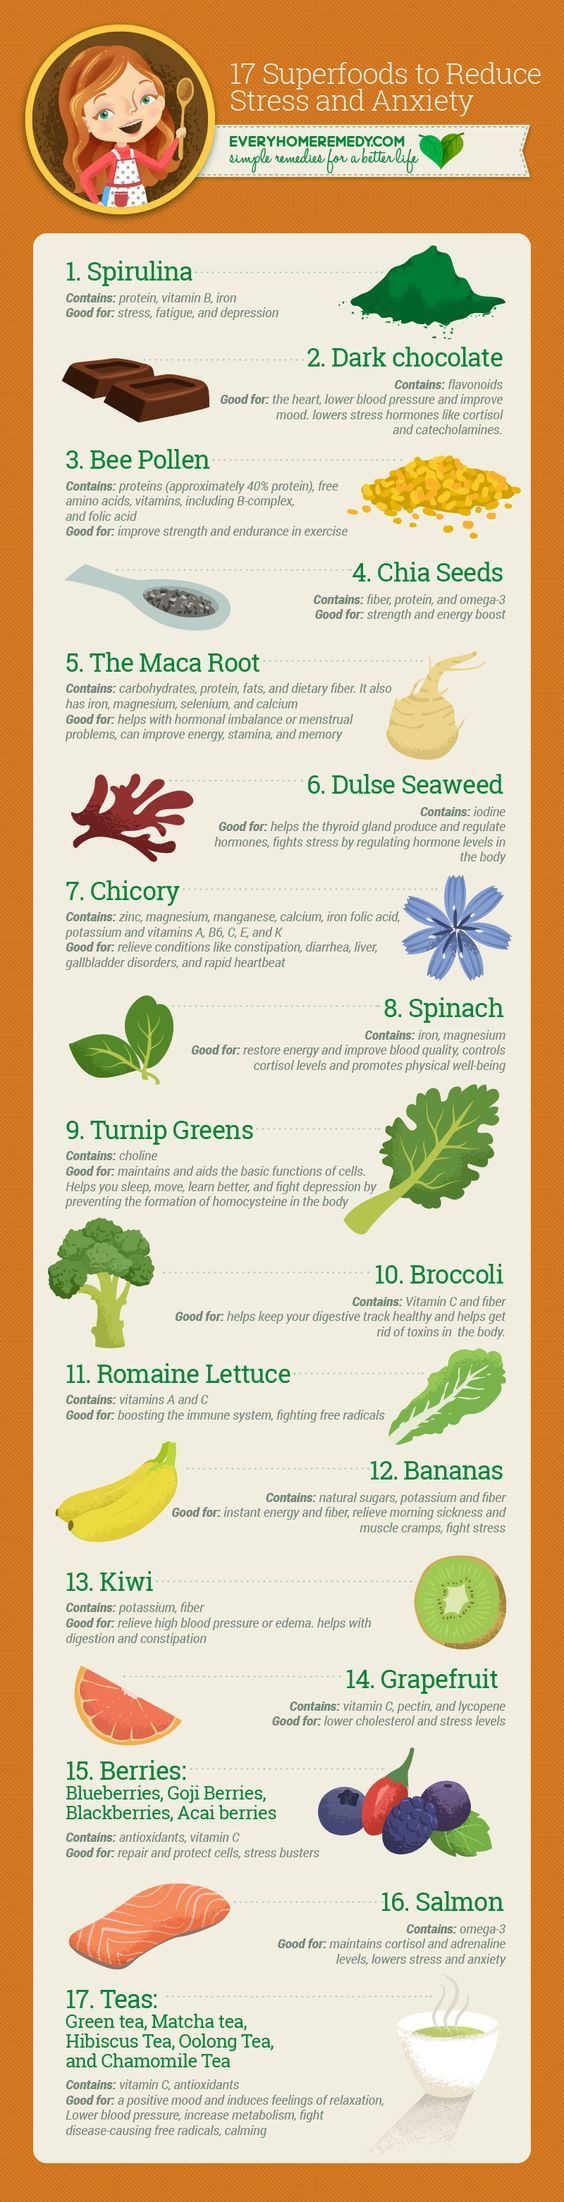 17 Superfoods to Reduce Stress and Anxiety | Every Home Remedy #health #healthy #superfood #stress #anxiety #remedies | Pinterest https://www.pinterest.com/pin/399976010640067725/